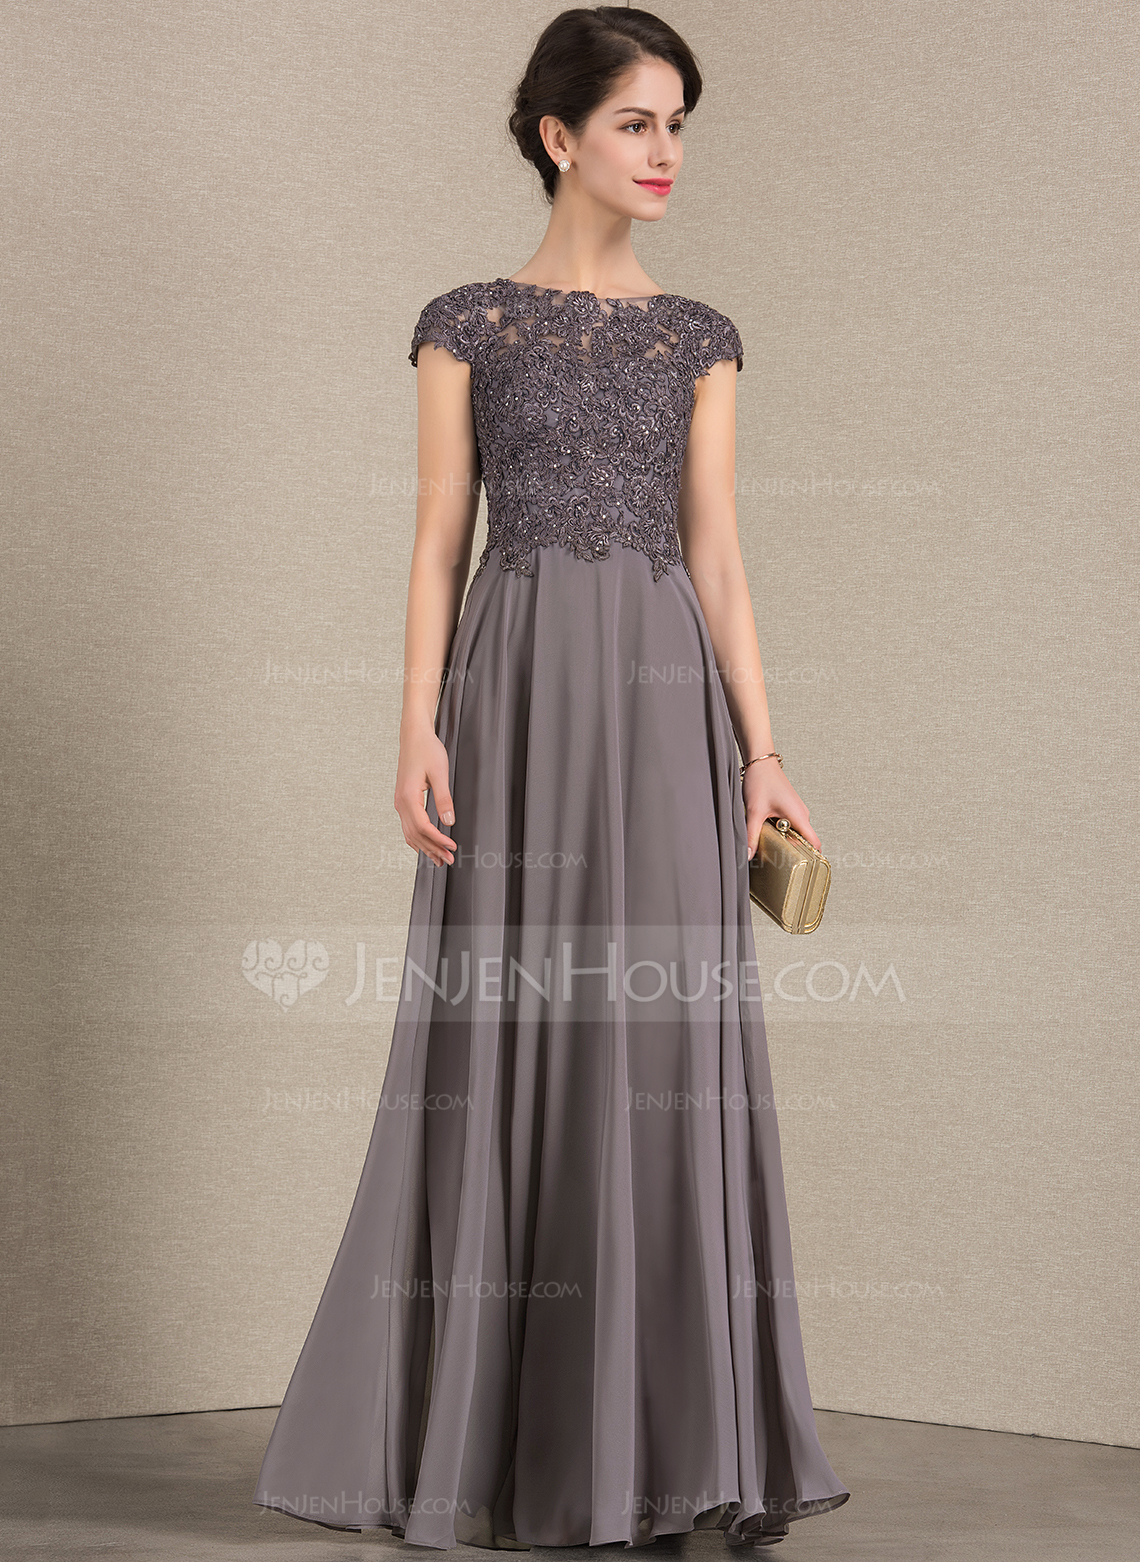 5f7c234d80fb A-Line/Princess Scoop Neck Floor-Length Chiffon Lace Mother of the Bride  Dress With Beading #143385